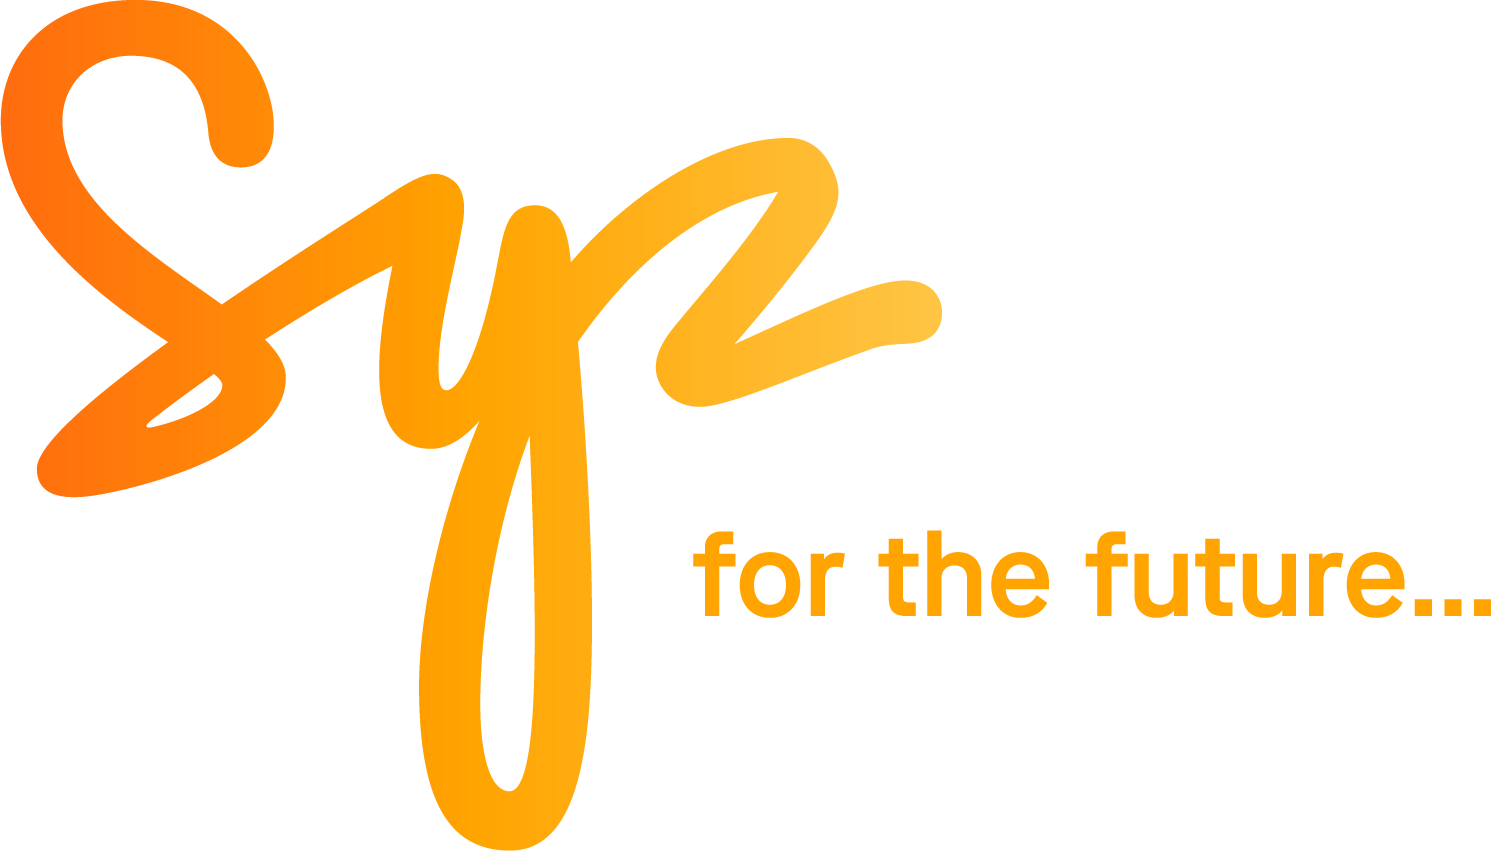 Syz Group reveals future-focused rebrand